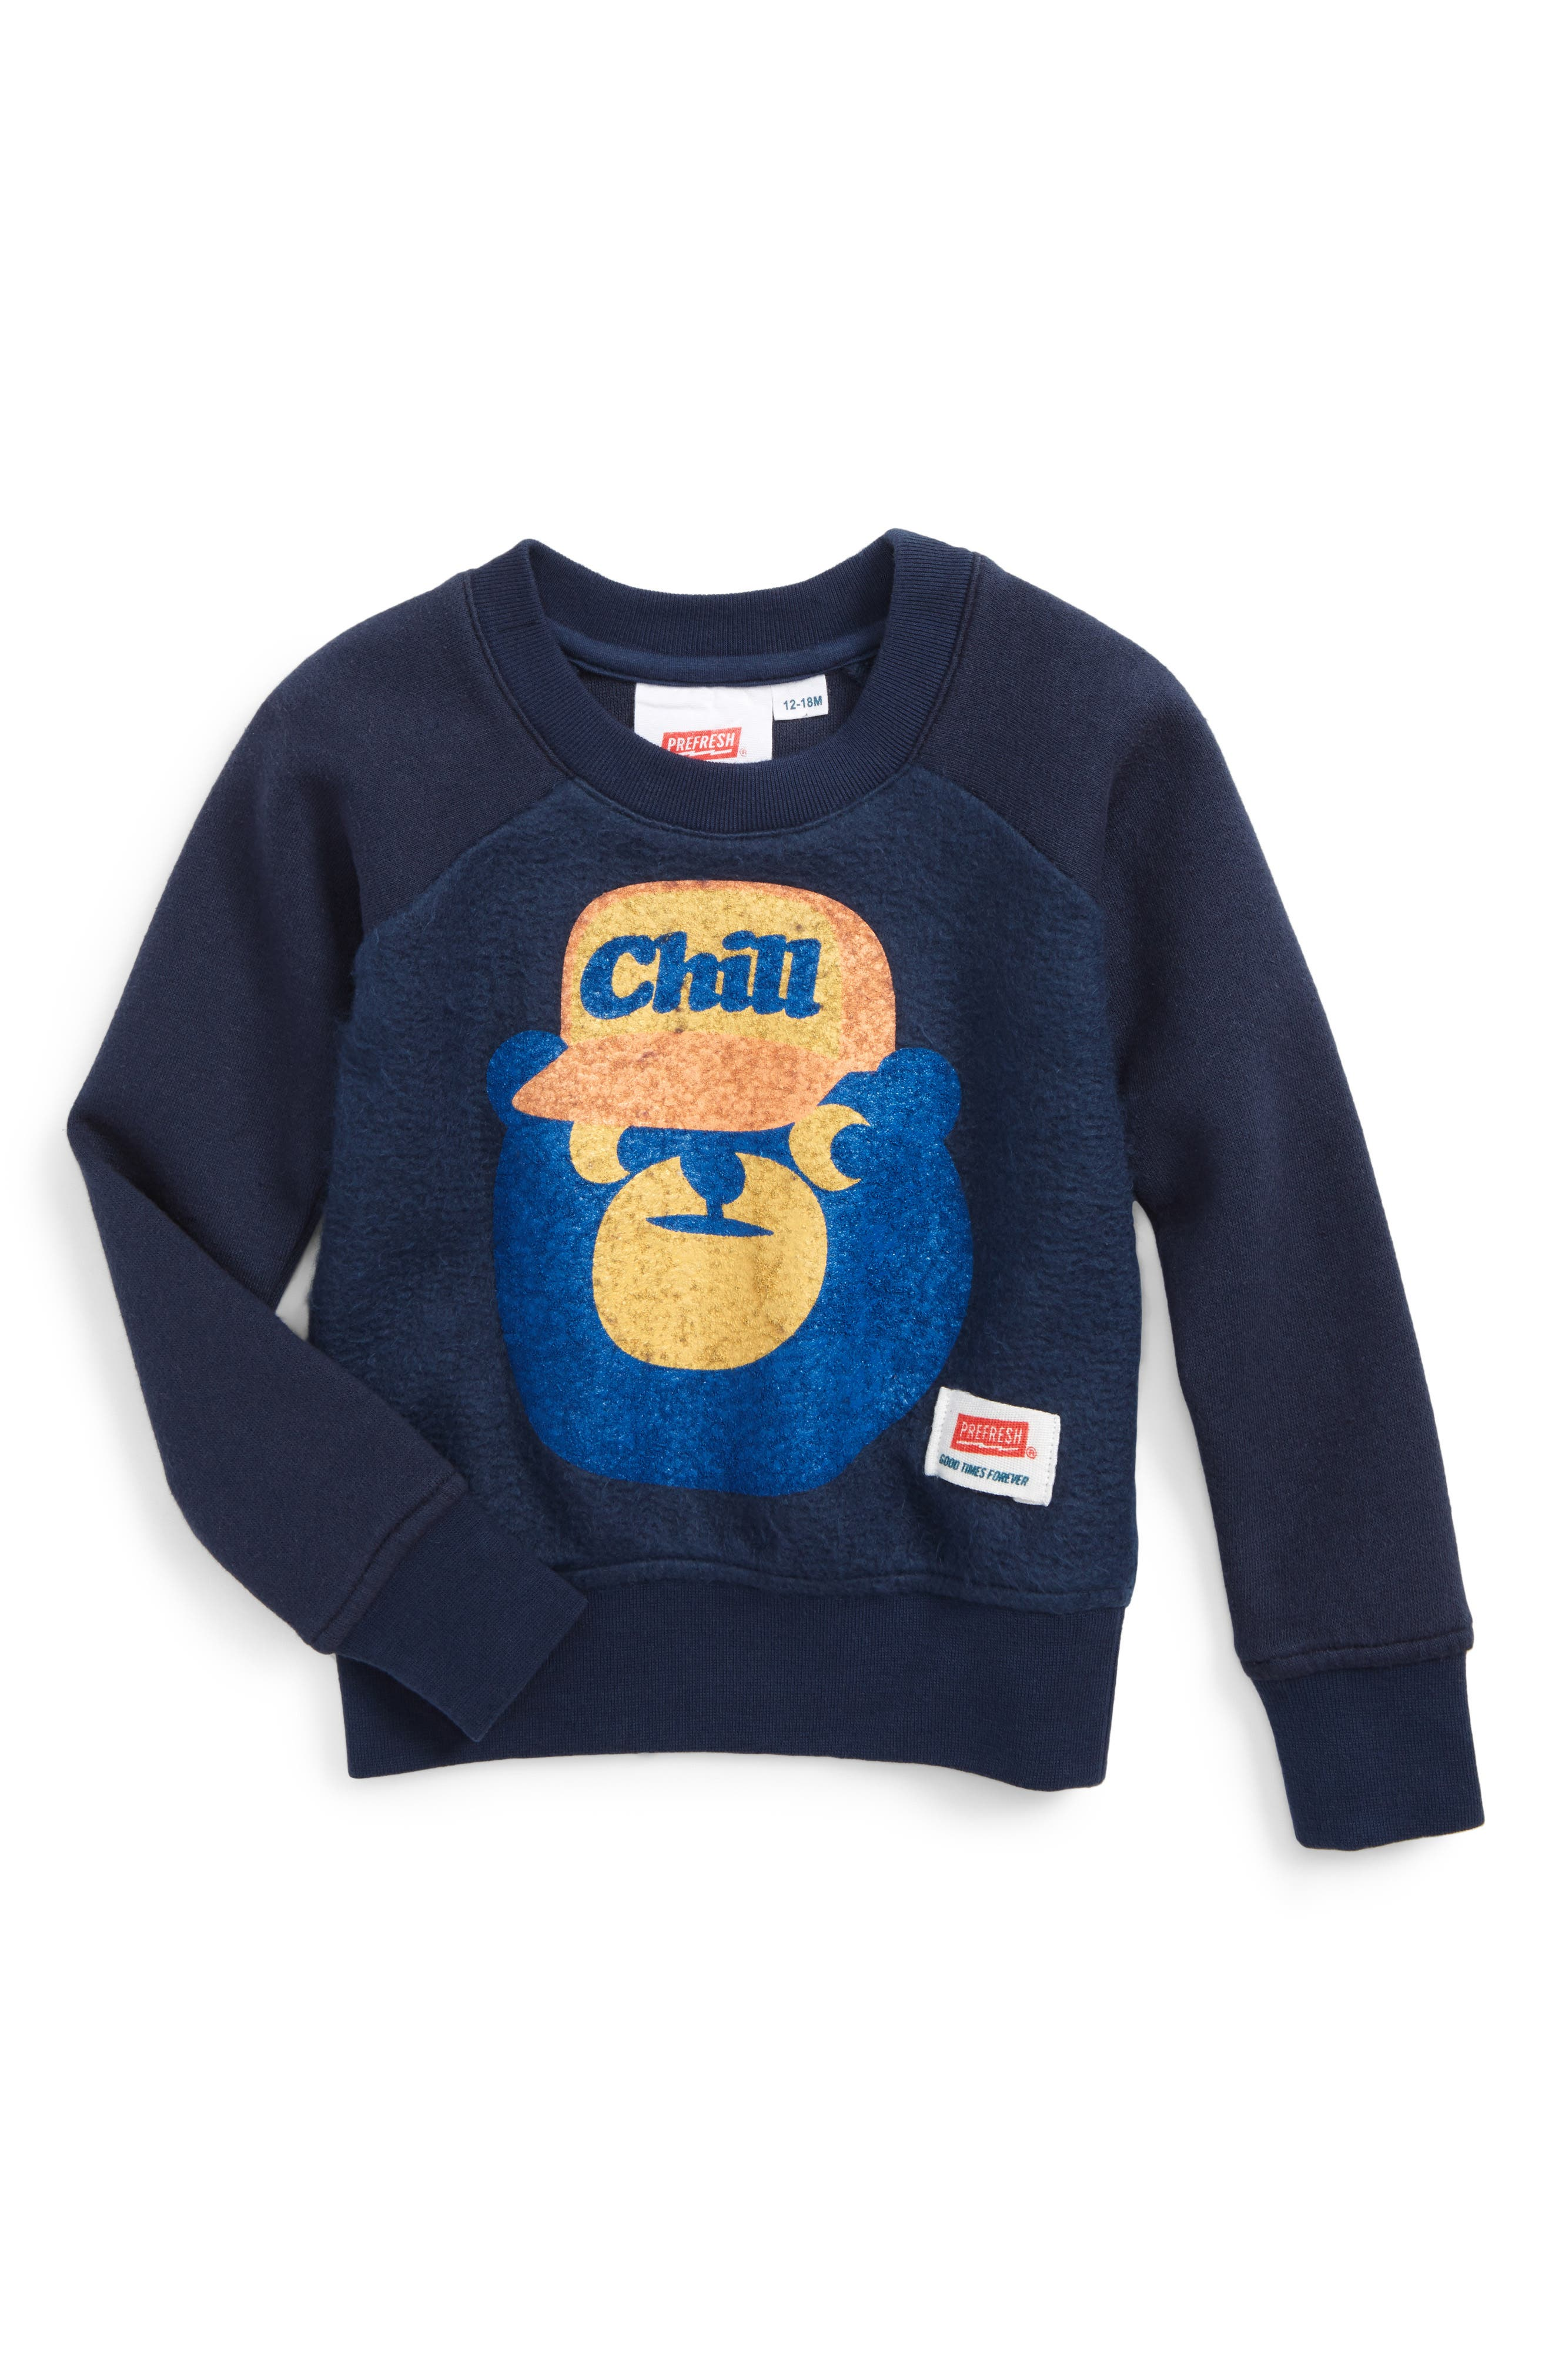 Alternate Image 1 Selected - Prefresh Chill Bear Sweatshirt (Baby Boys)